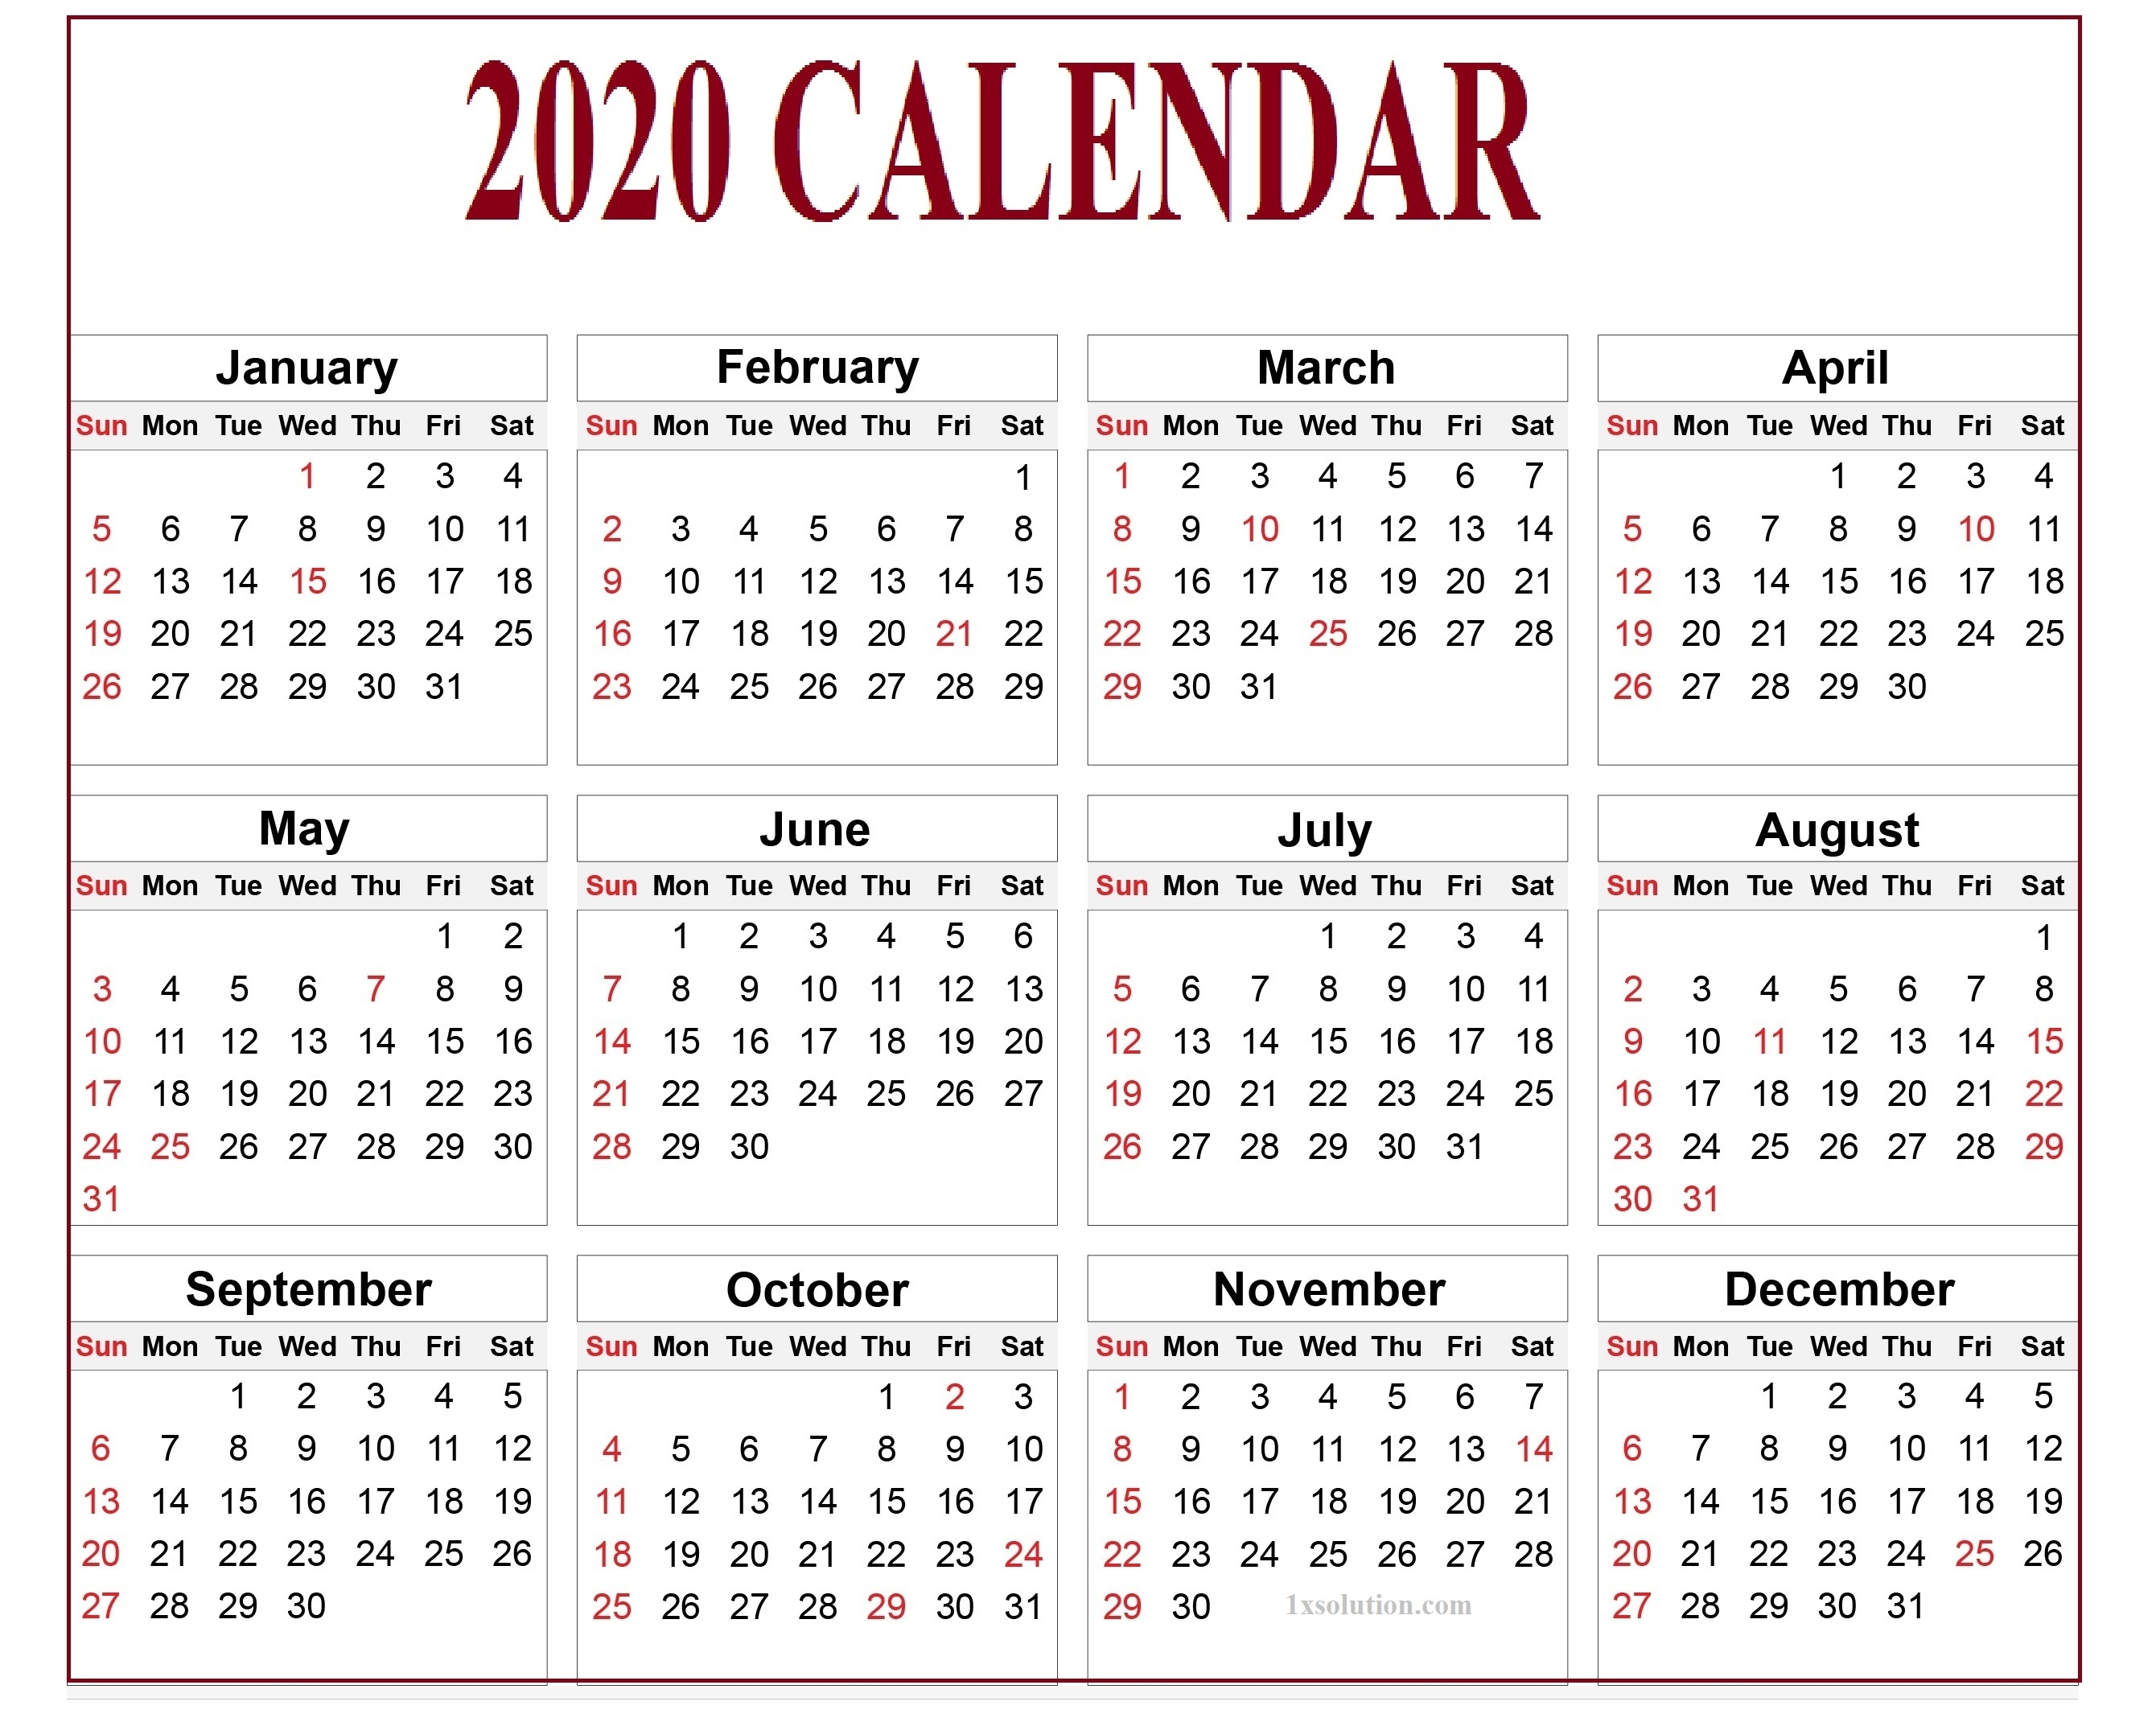 Calendar 2020 Pdf For Mark Your Daily Class | | Calendar